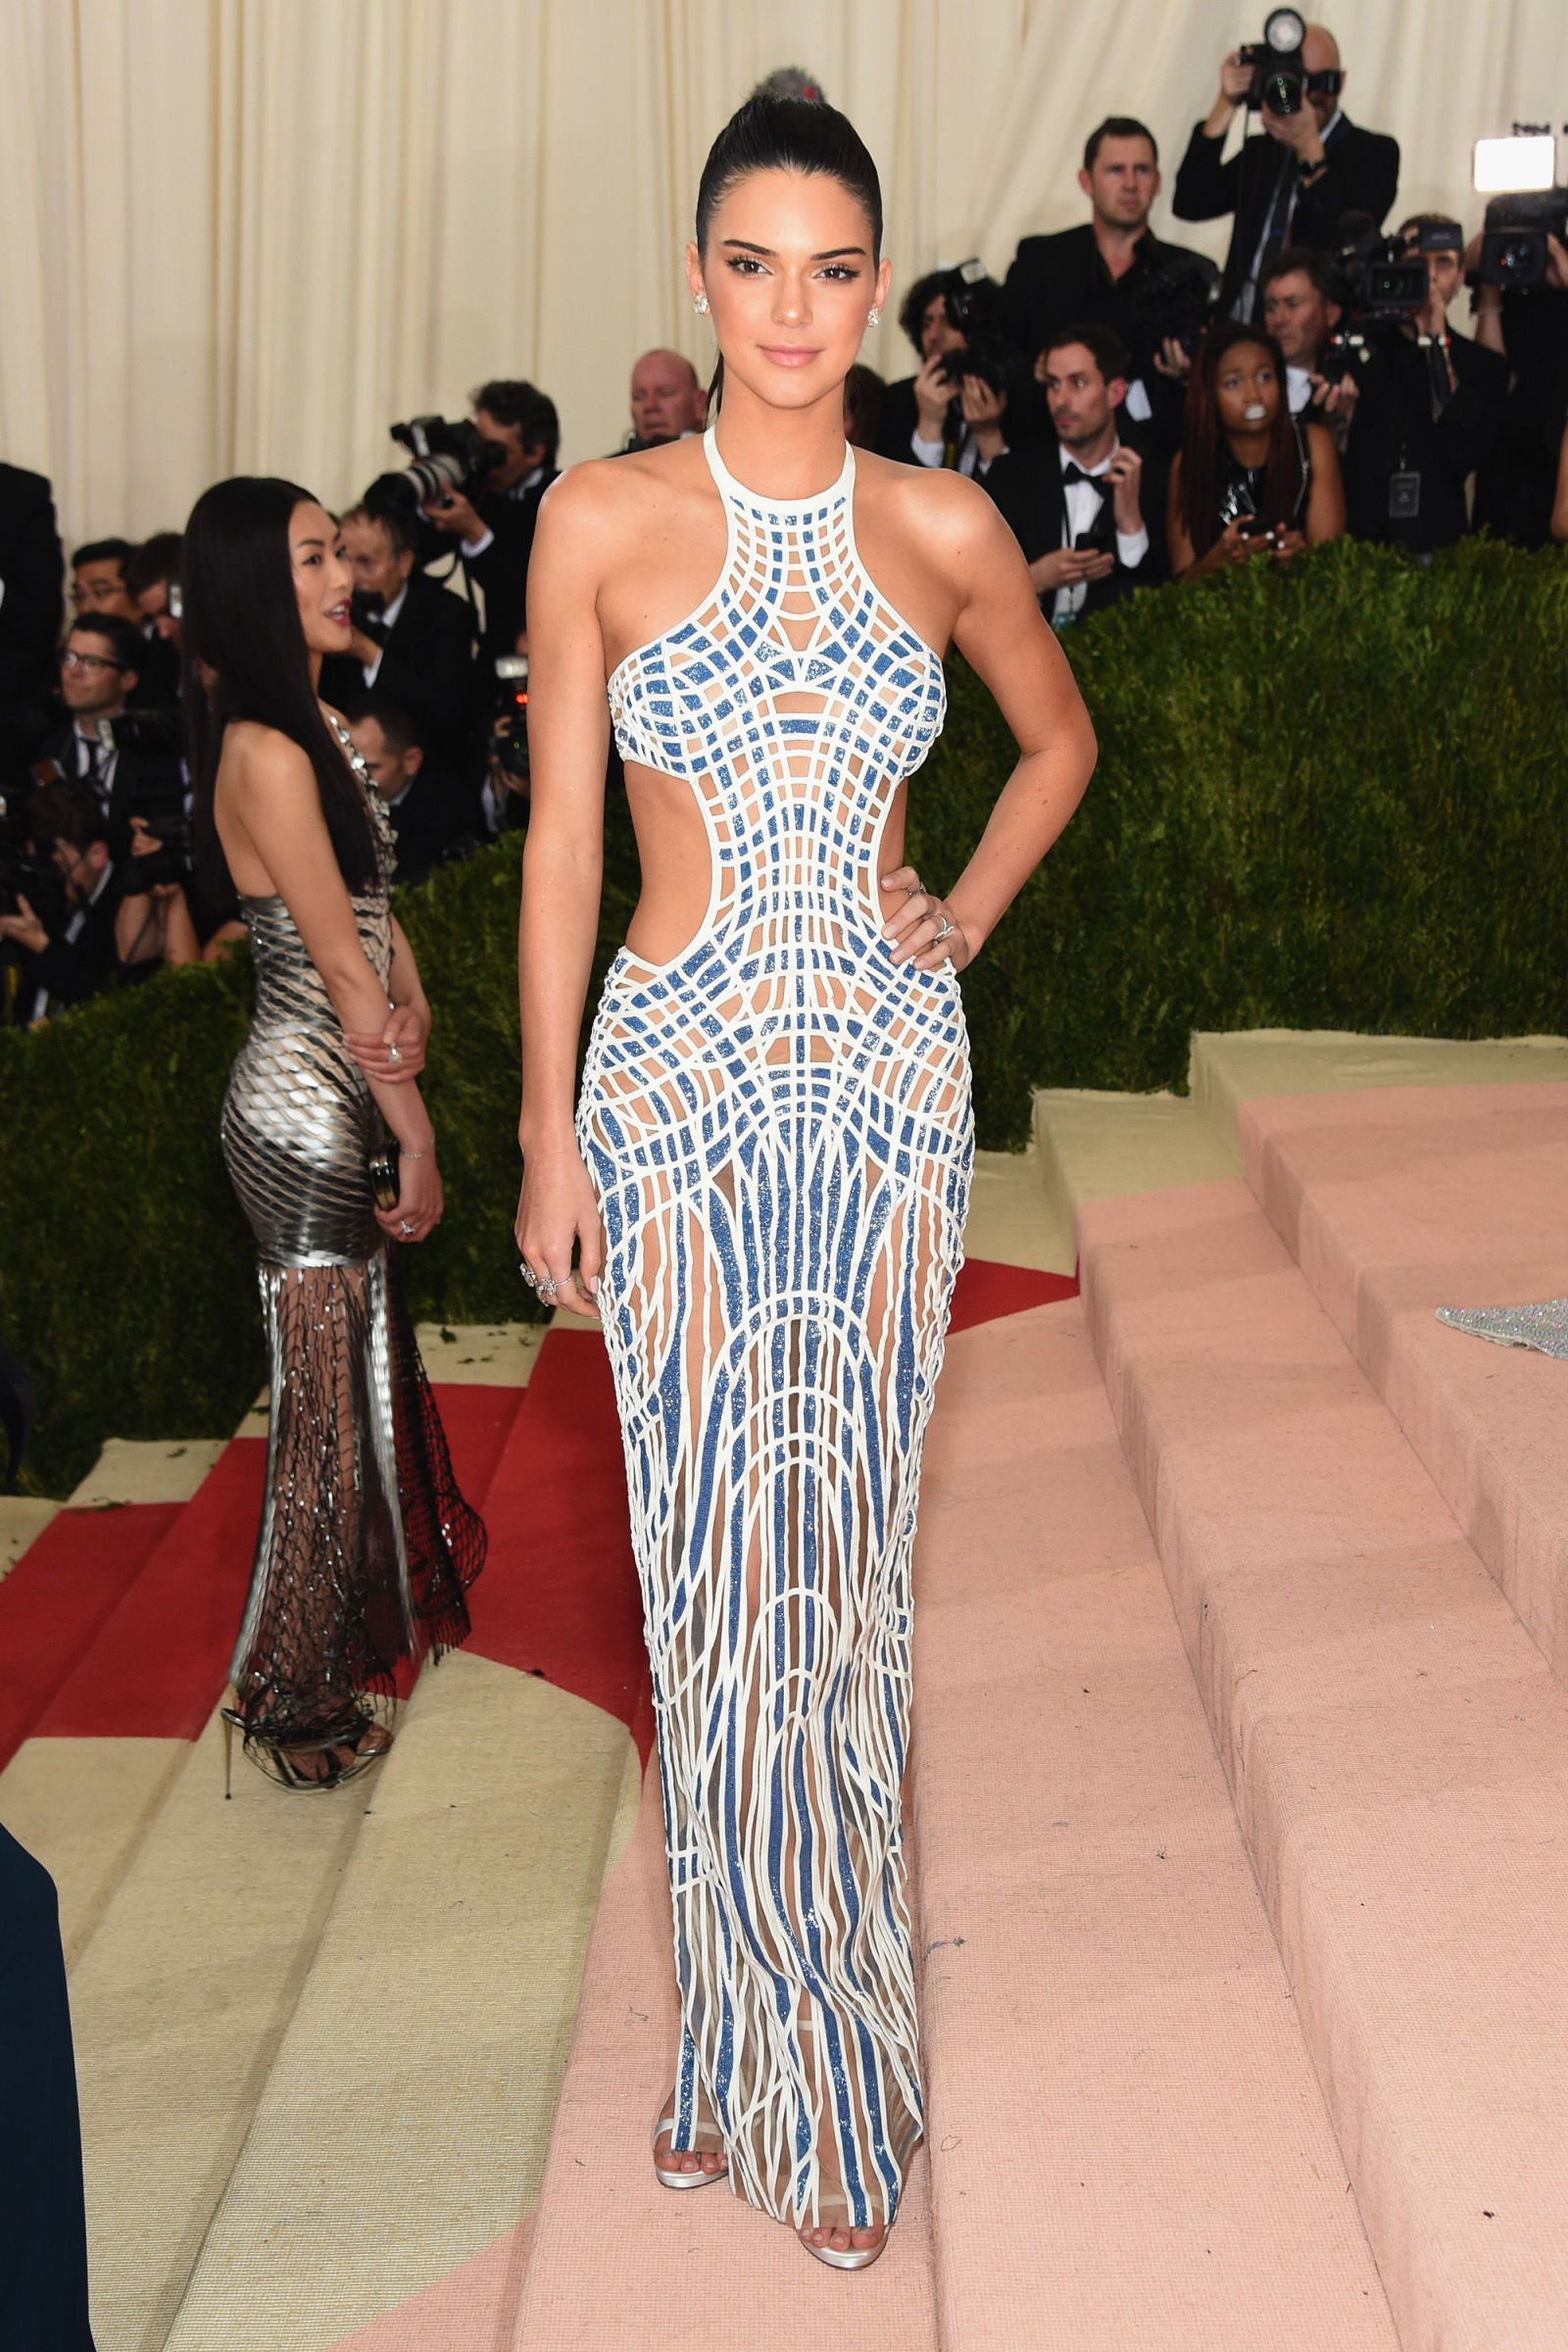 Kendall Jenner hairstyles at Met Gala 2016